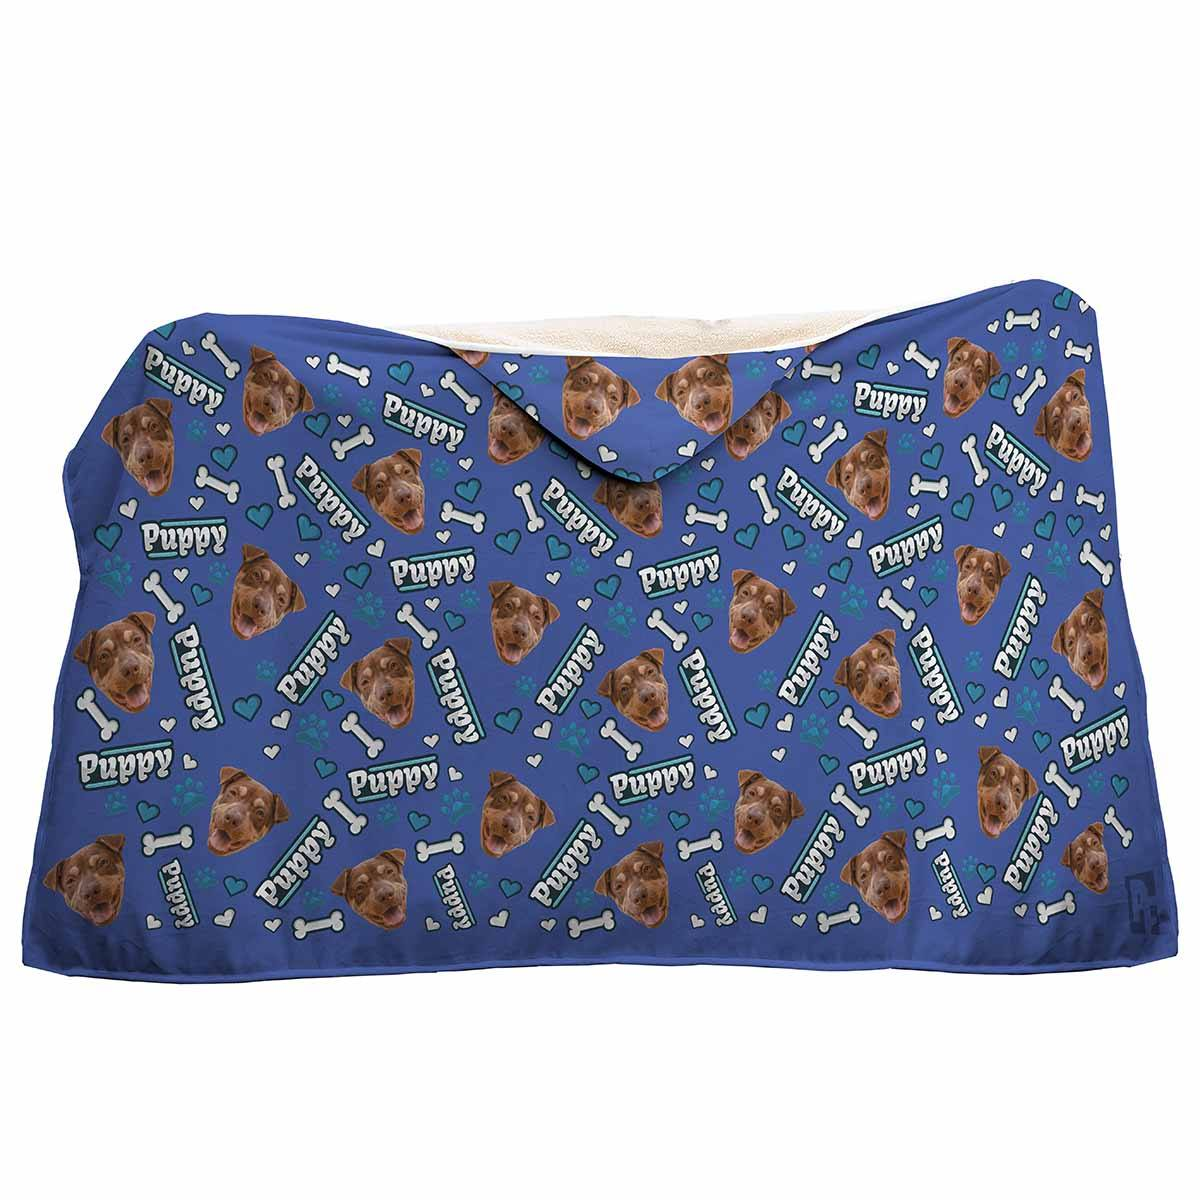 darkblue Puppy hooded blanket personalized with photo of face printed on it